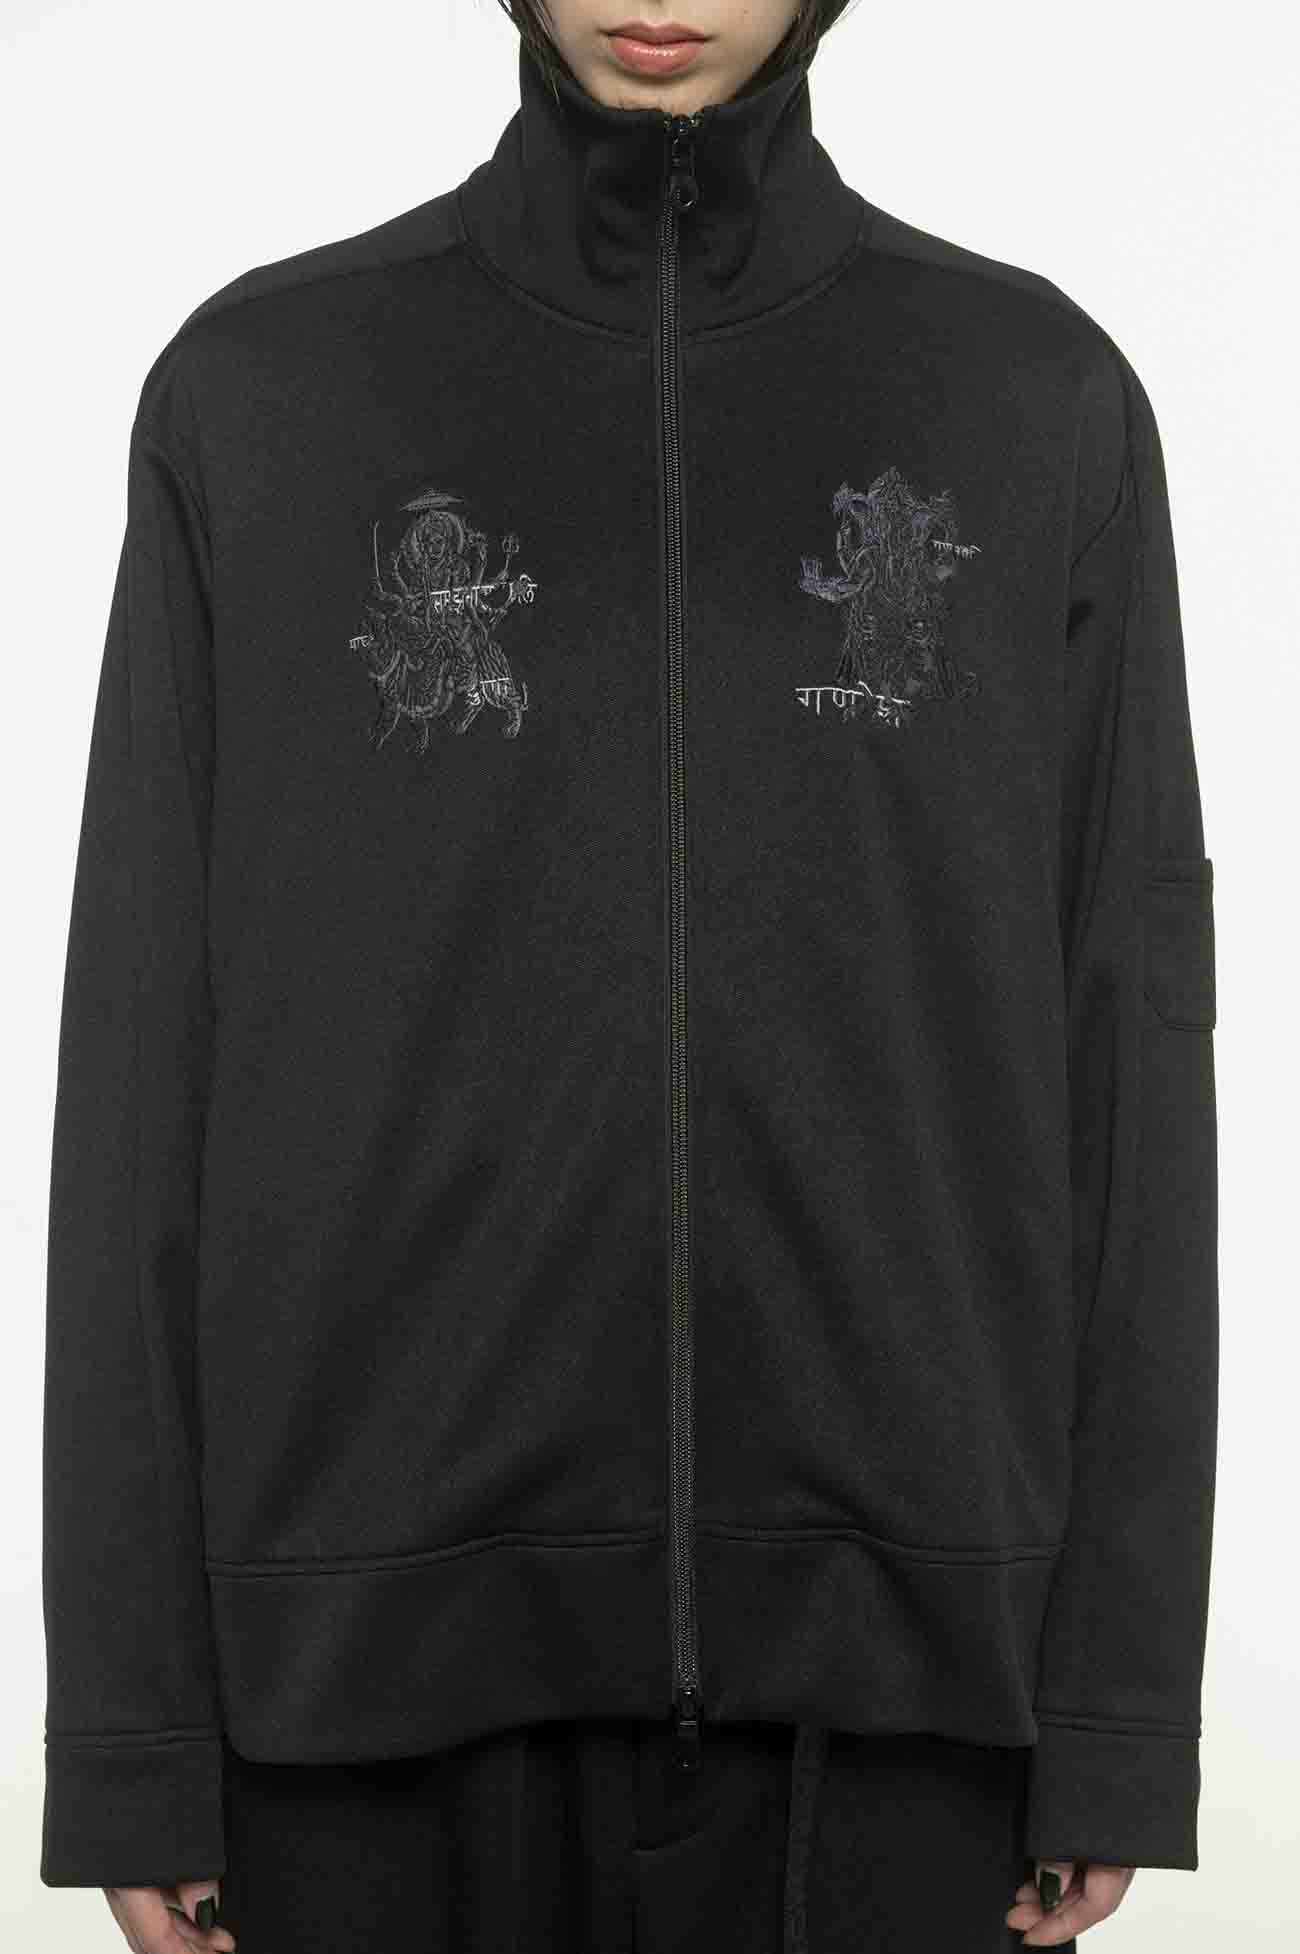 Pe/Smooth Jersey Hindu God Durga&Ganesha Embroidery Track Jacket